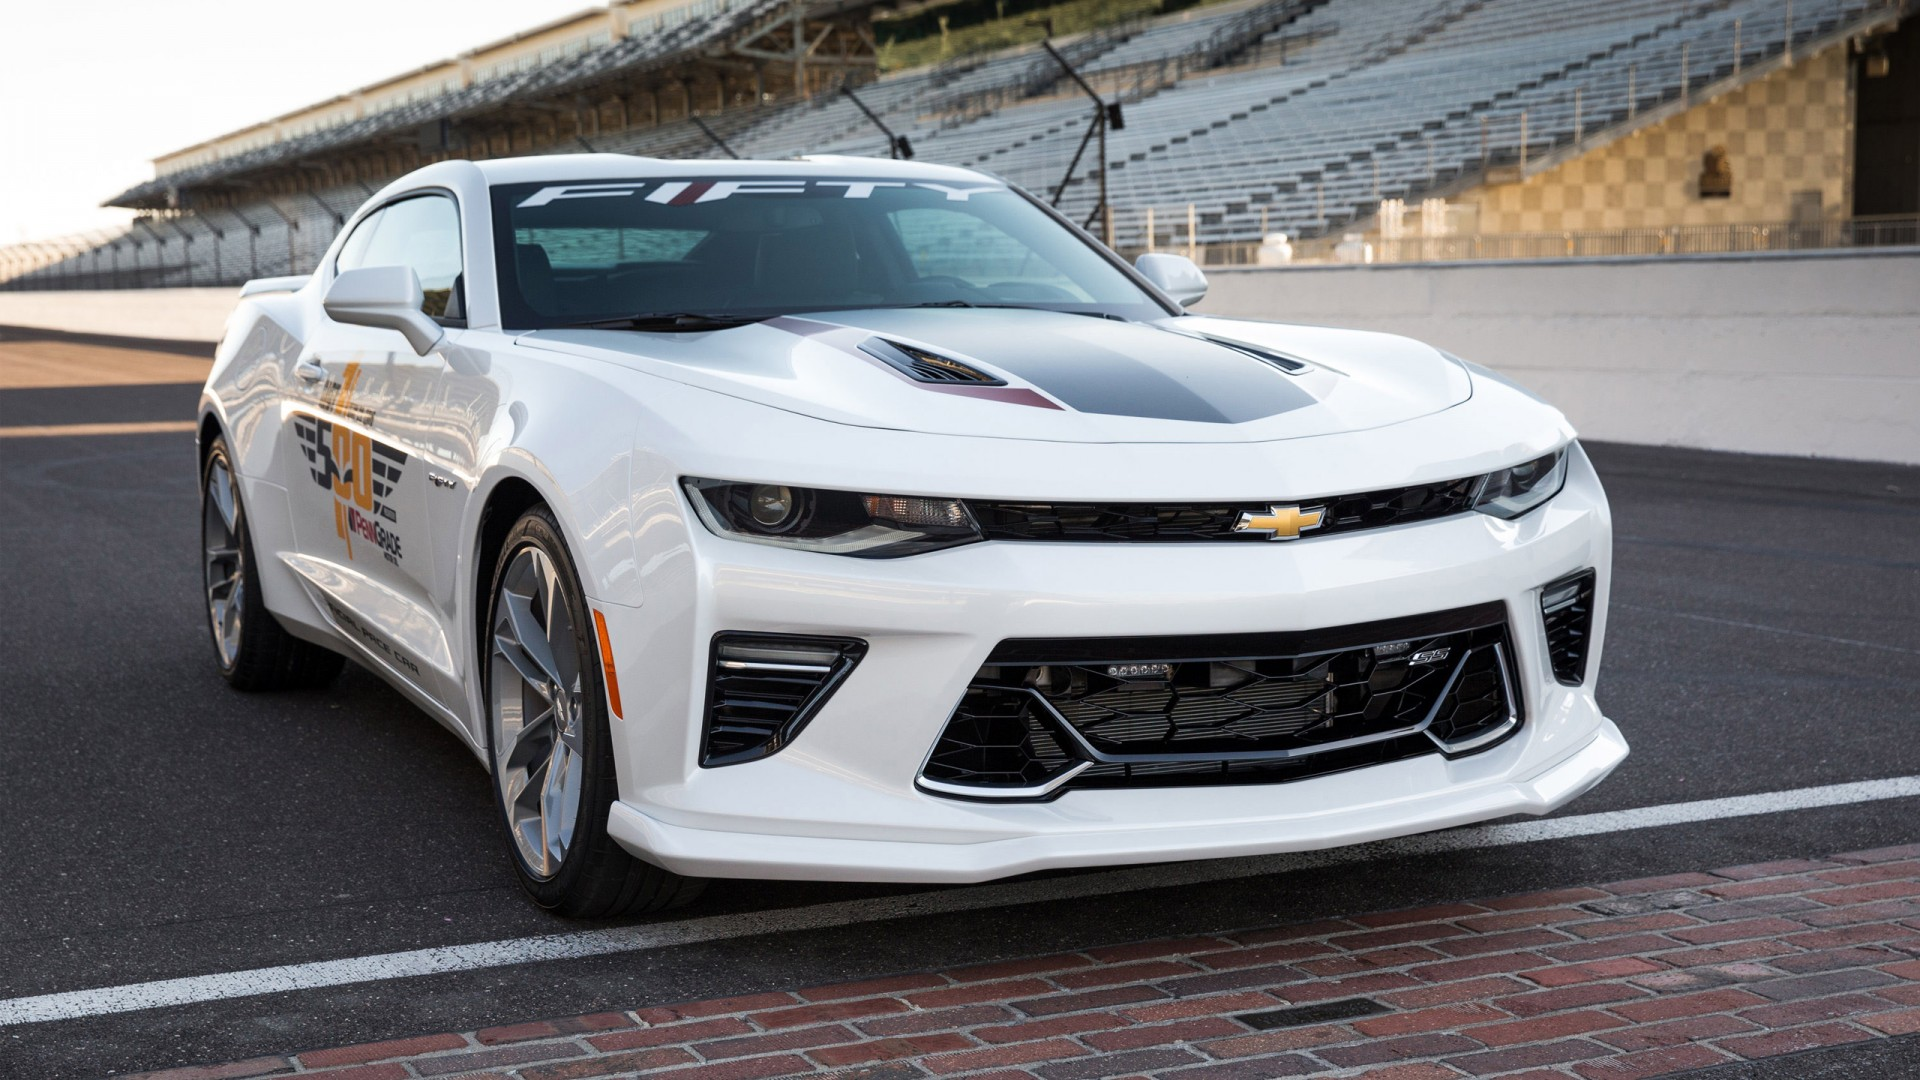 camaro chevrolet anniversary 50th edition wallpapers hd 2560 1080 1920